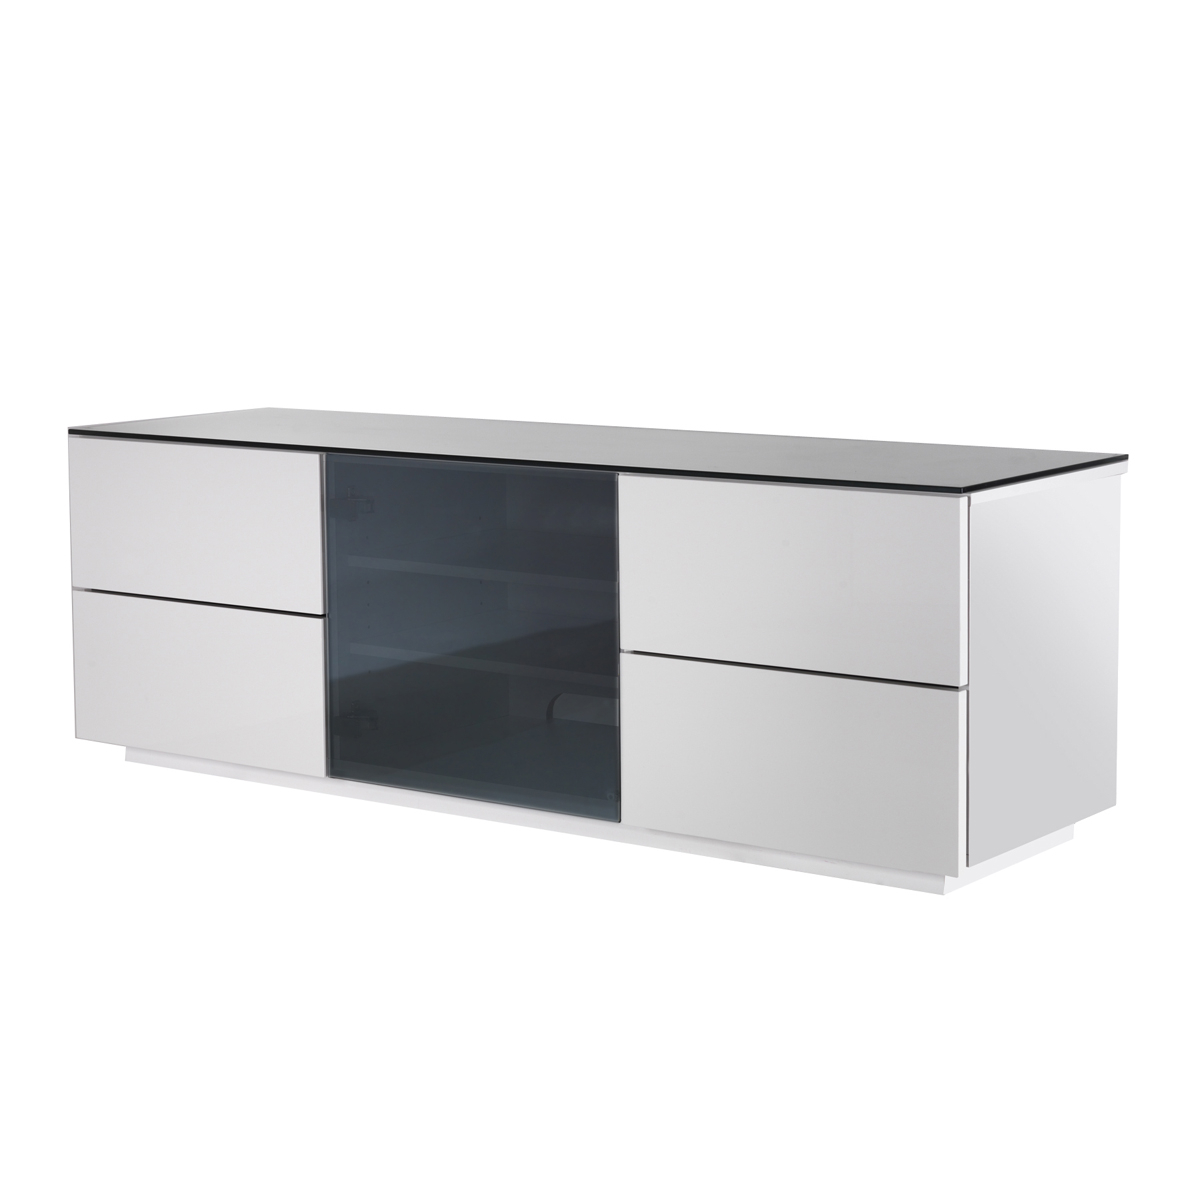 Widely Used Shiny Black Tv Stands Intended For Ikea Tv Stand Hack Modern Italian Bedroom Set High Gloss Black White (View 17 of 20)